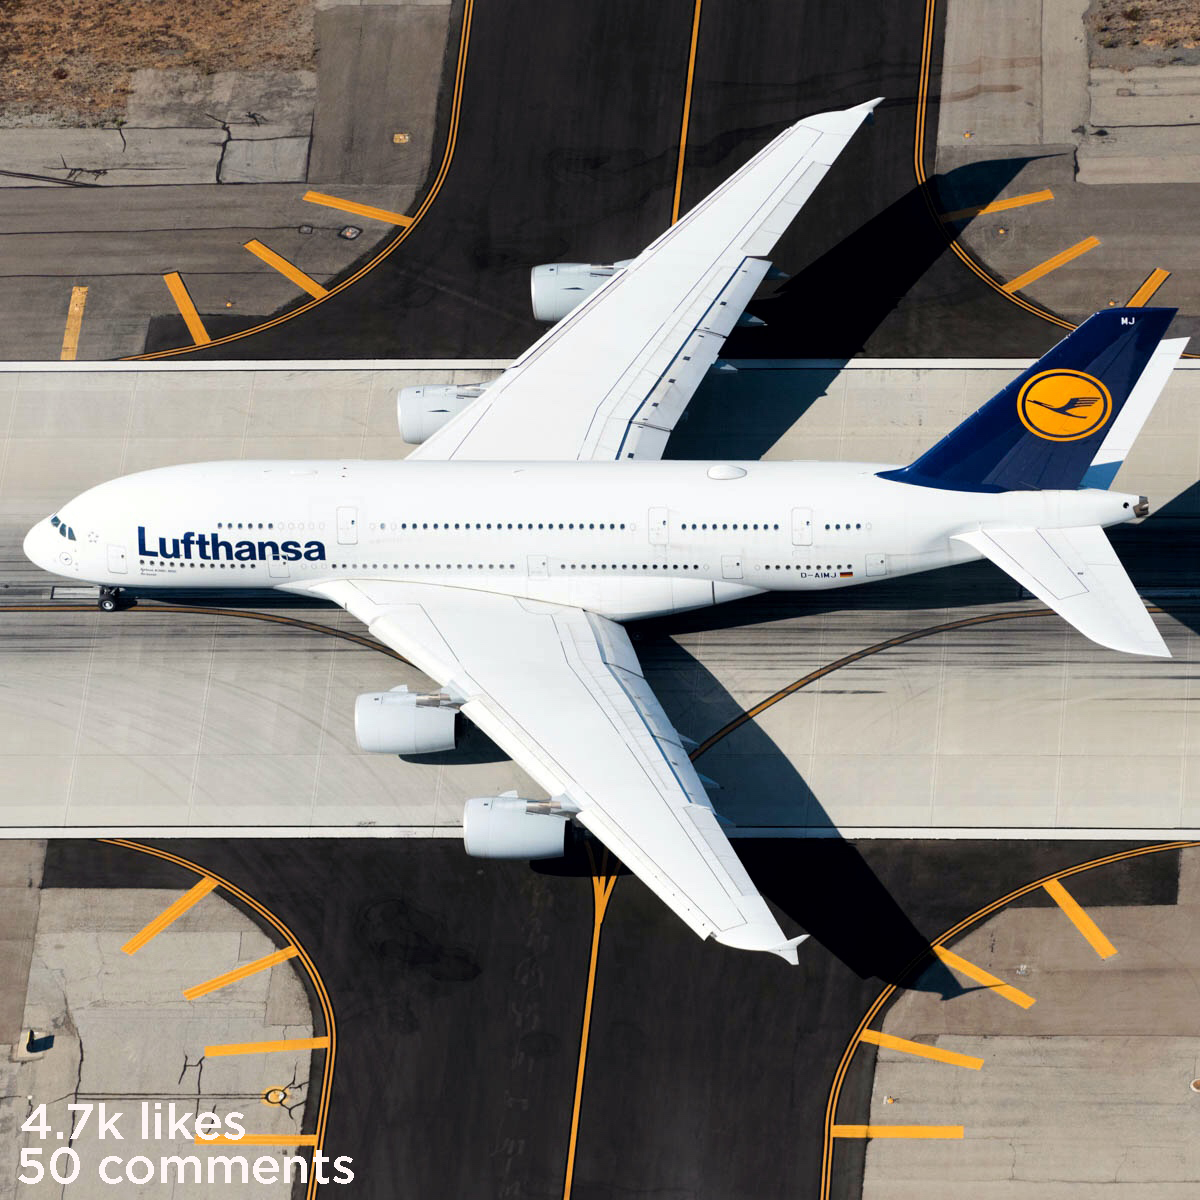 lh a380 intersection (1 of 1).jpg